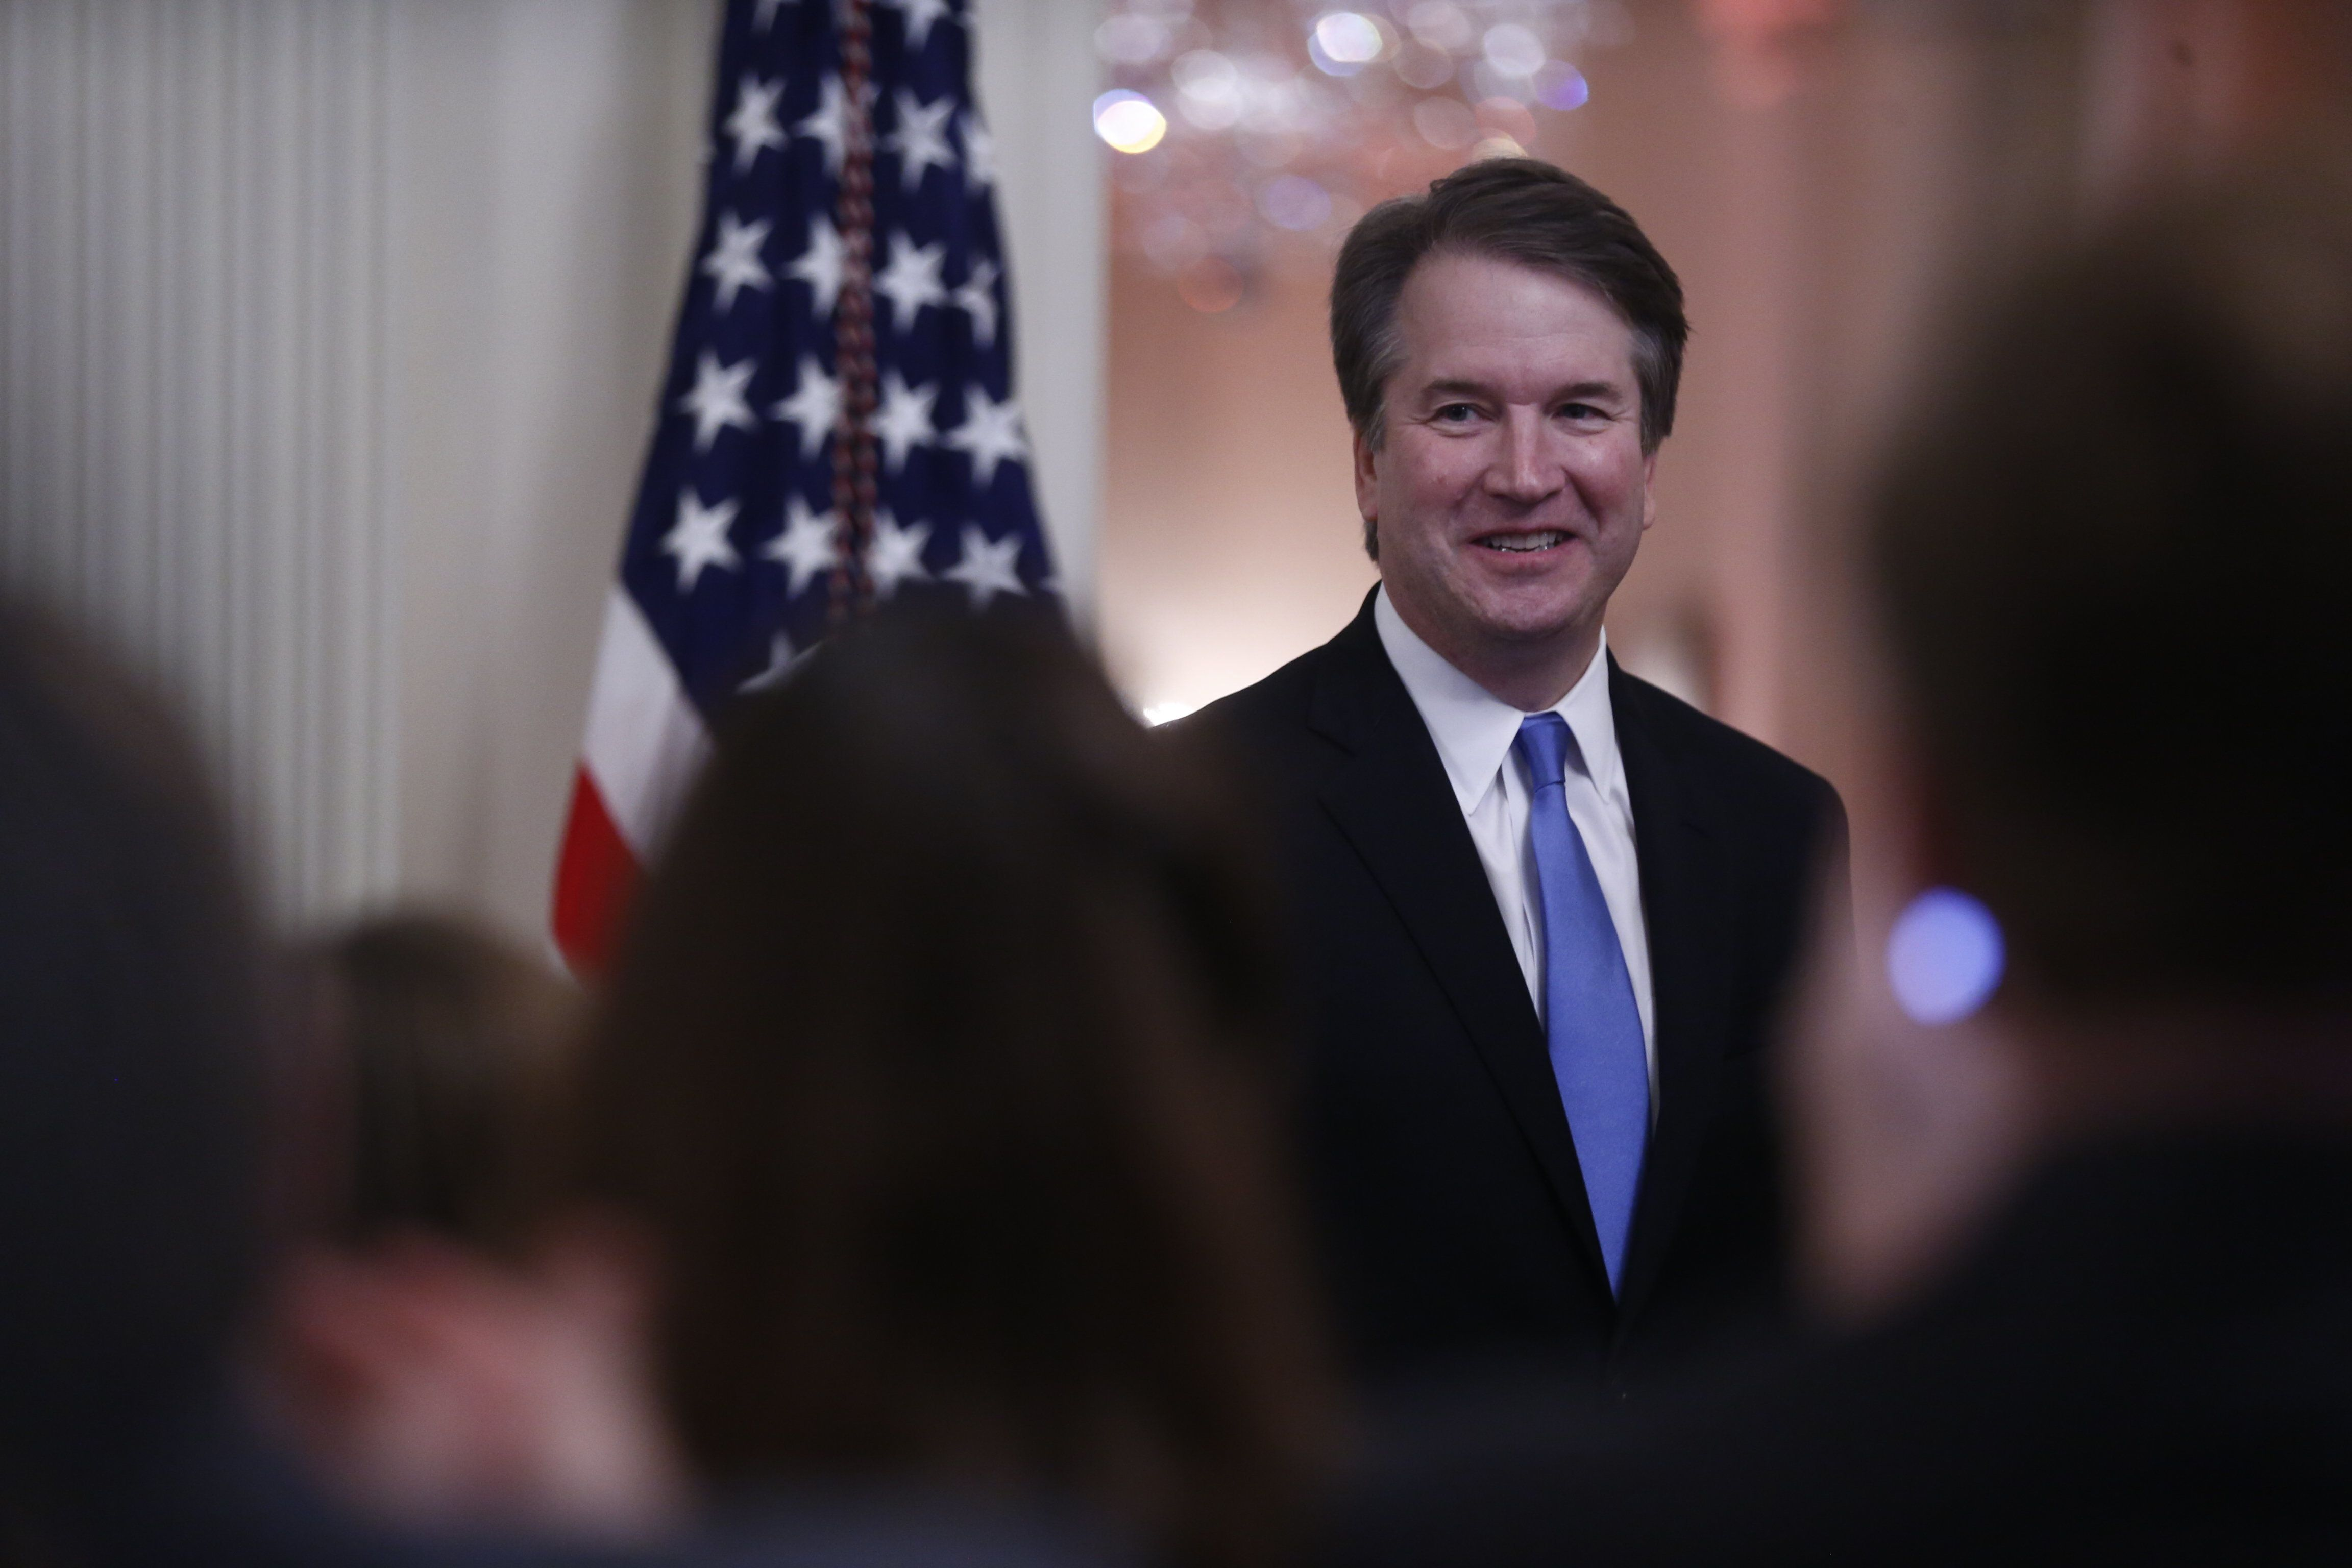 Brett Kavanaugh, associate justice of the U.S. Supreme Court, smiles as U.S. President Donald Trump speaks during a ceremonia